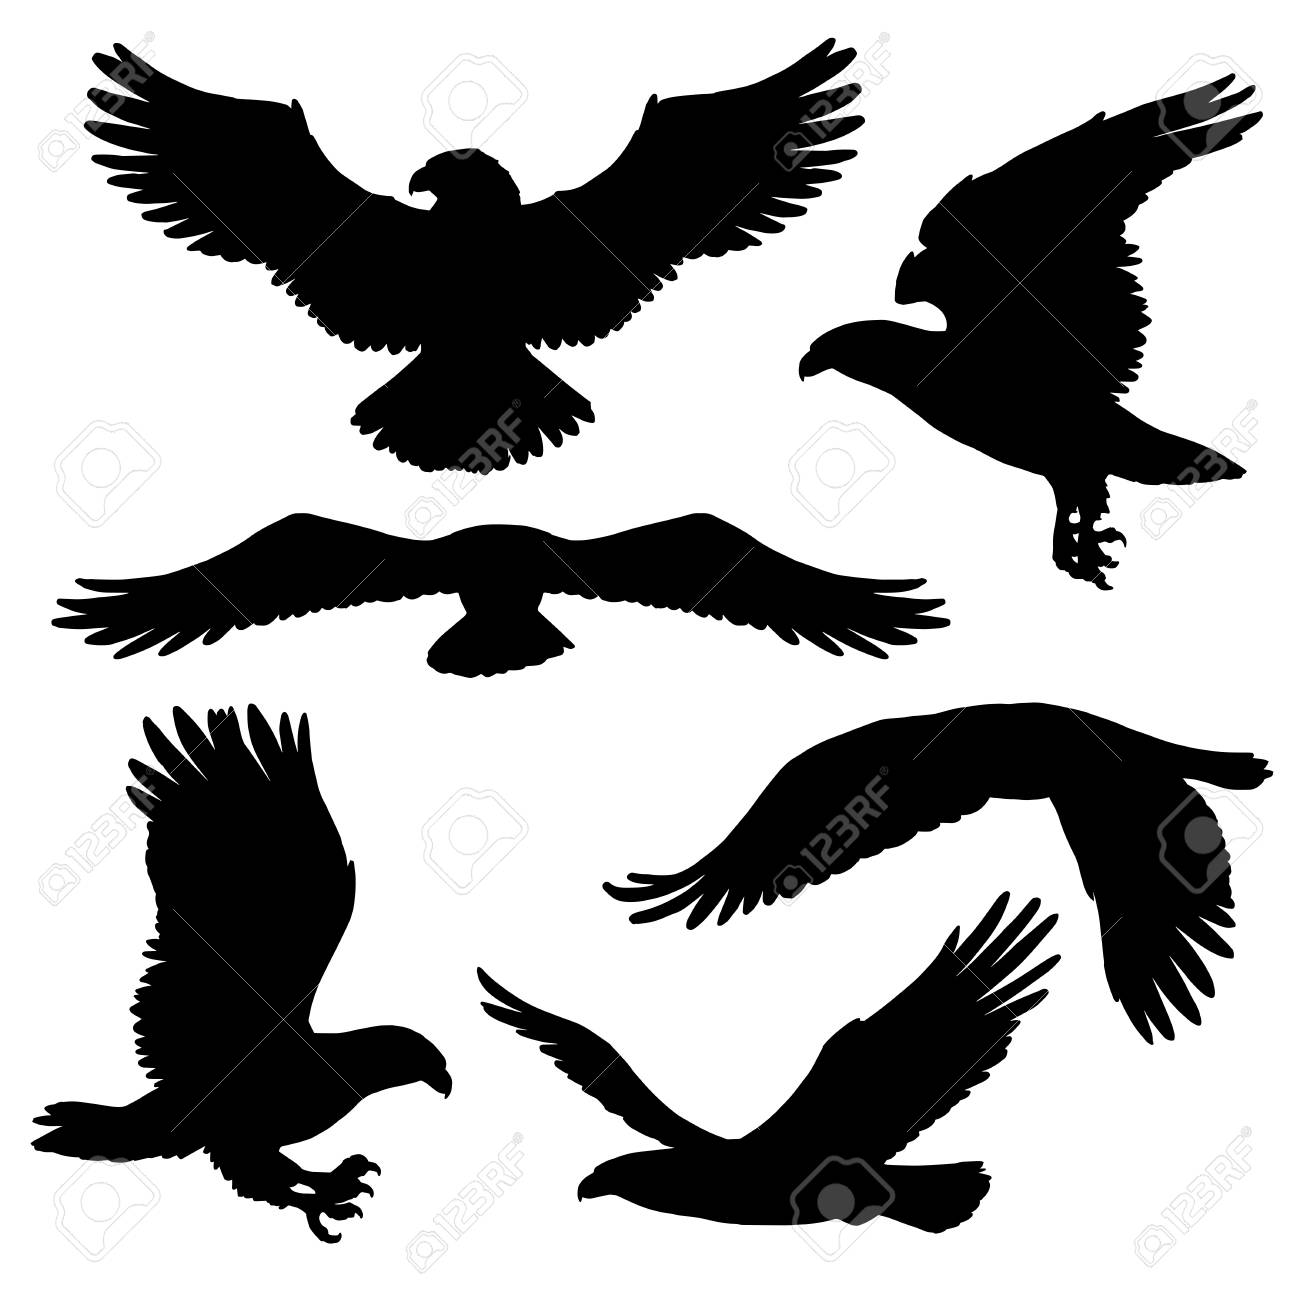 Flying eagle, falcon and hawk black silhouette bird icons. Vector bird predator in flying poses for heraldic symbols or tattoo design. Wild animal as sign of power and freedom - 128161737